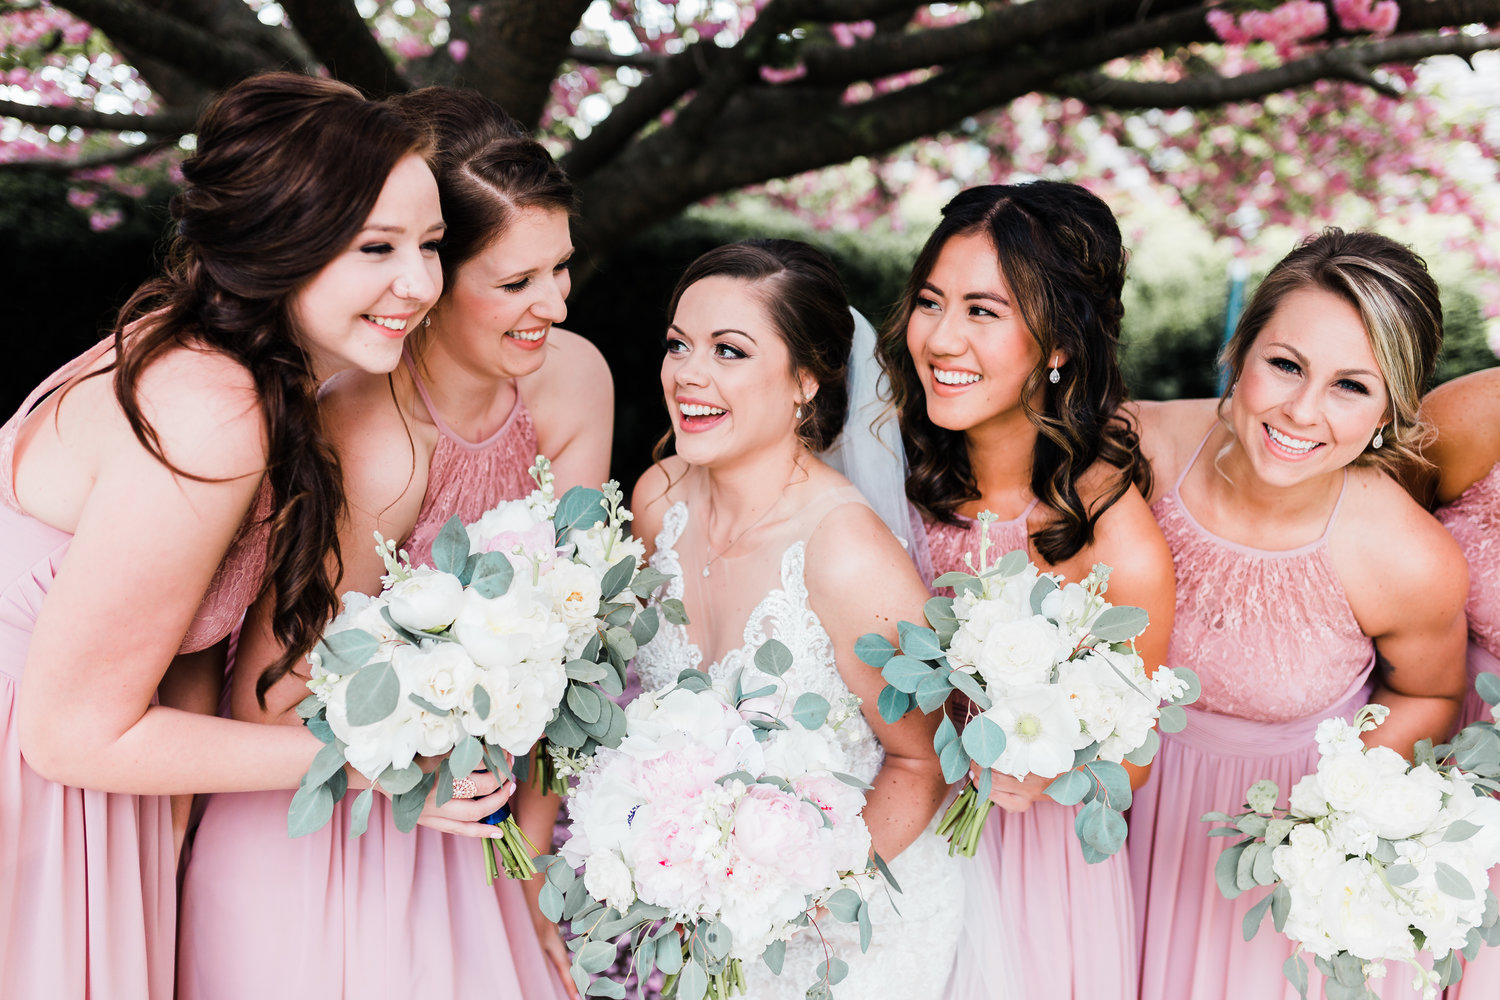 bride-bridesmaids-md.jpg